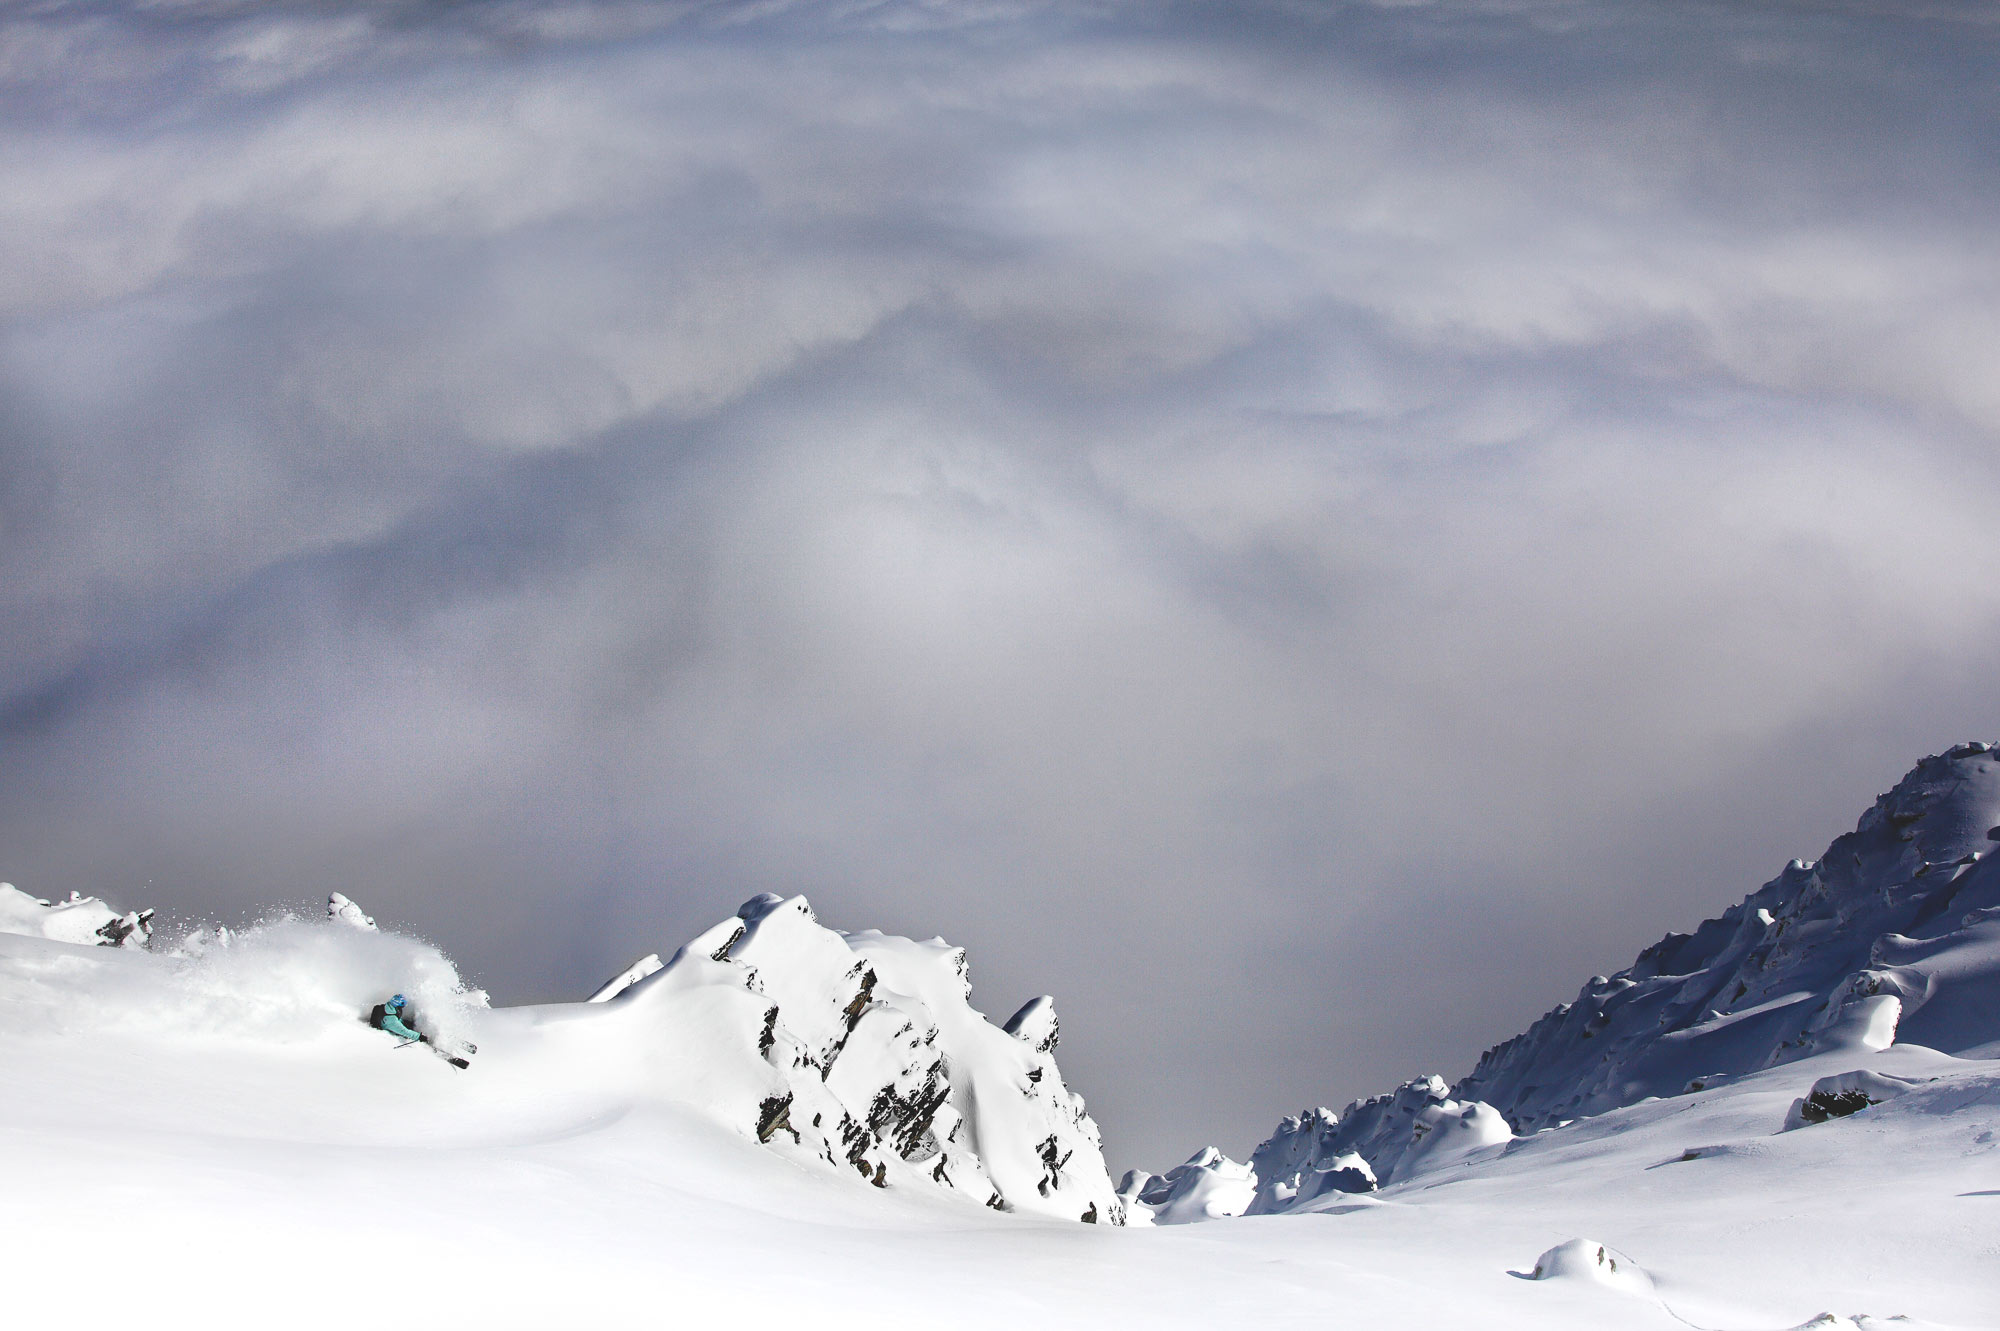 Free Skier Pete Oswald Skiing powder above clouds up The Remarkables